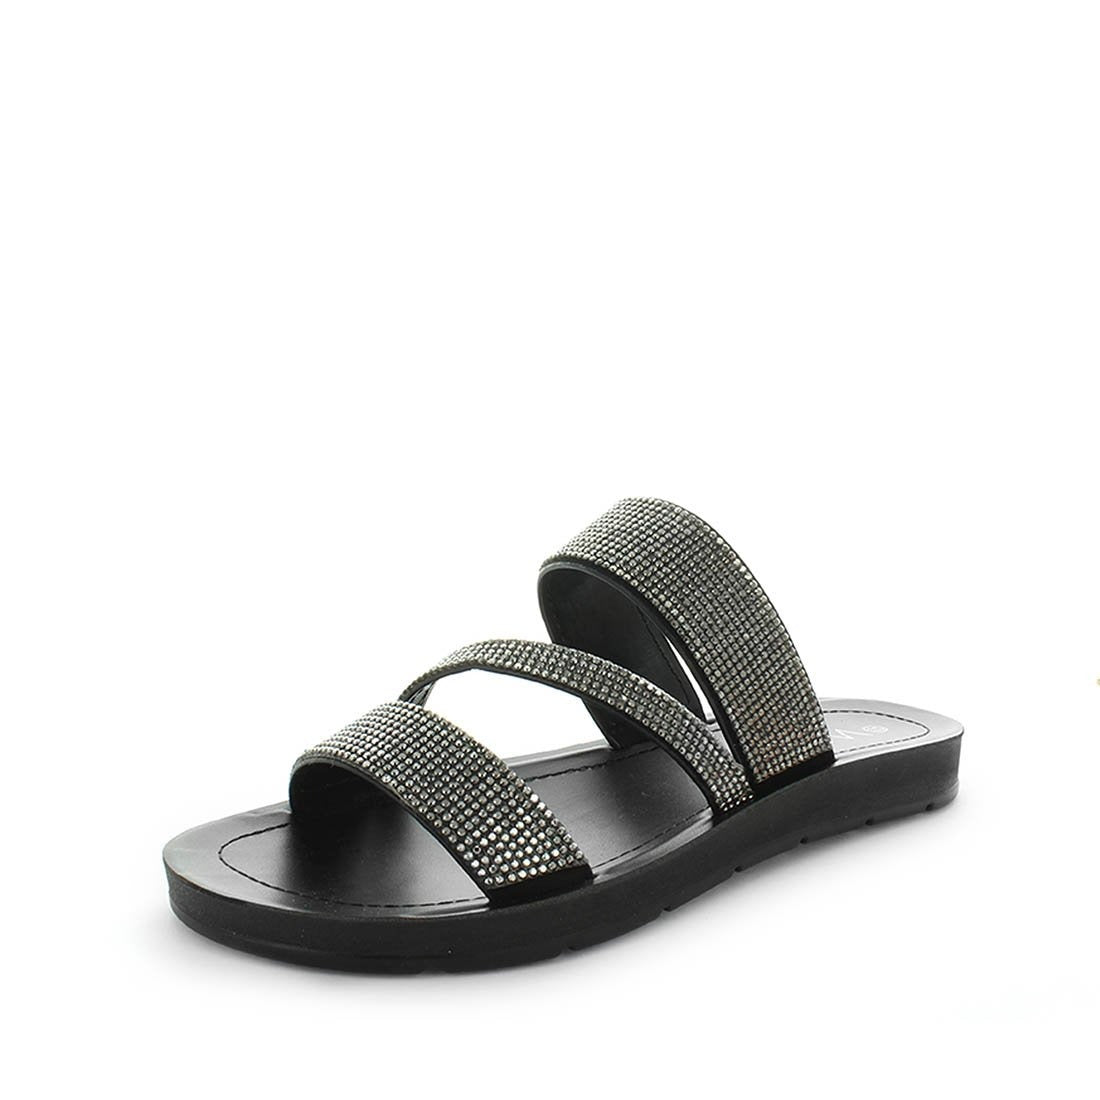 womens slides, womens summer sandals, ladies slip on sandals, wilde shoes, soar